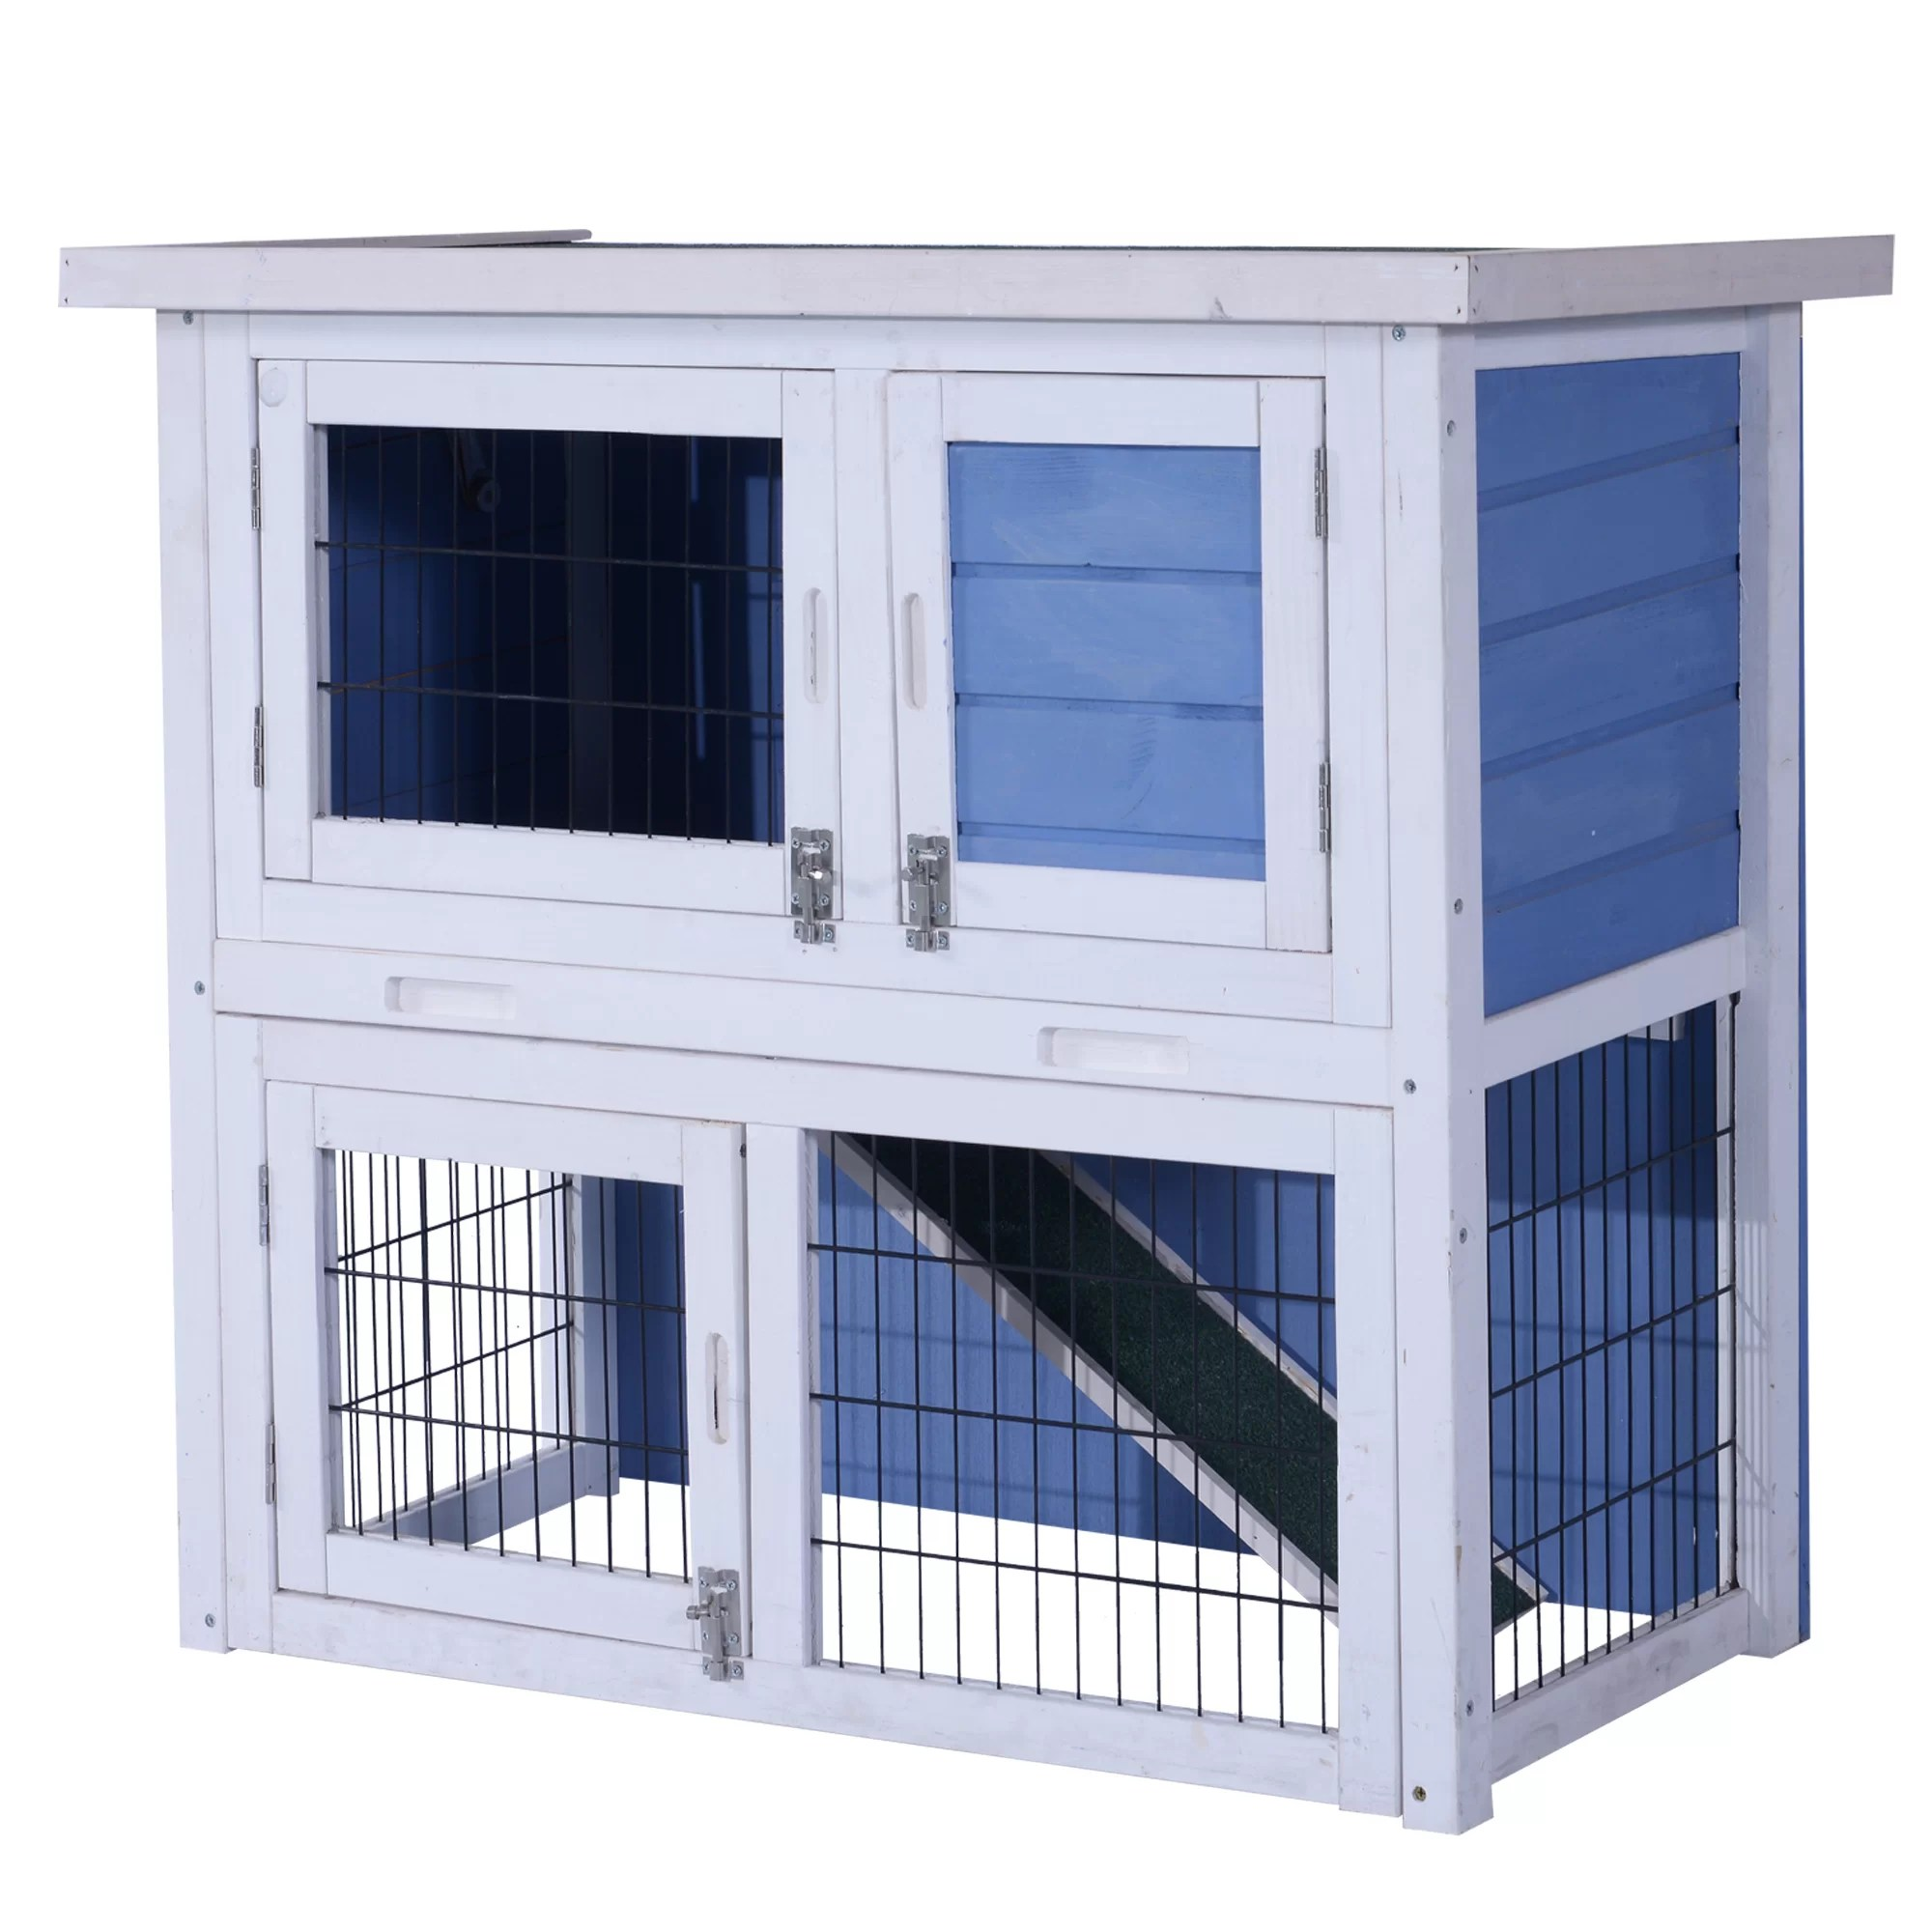 Petit Bahut Archie Oscar Hannibal Wooden Hutch Small Chicken Coop Reviews